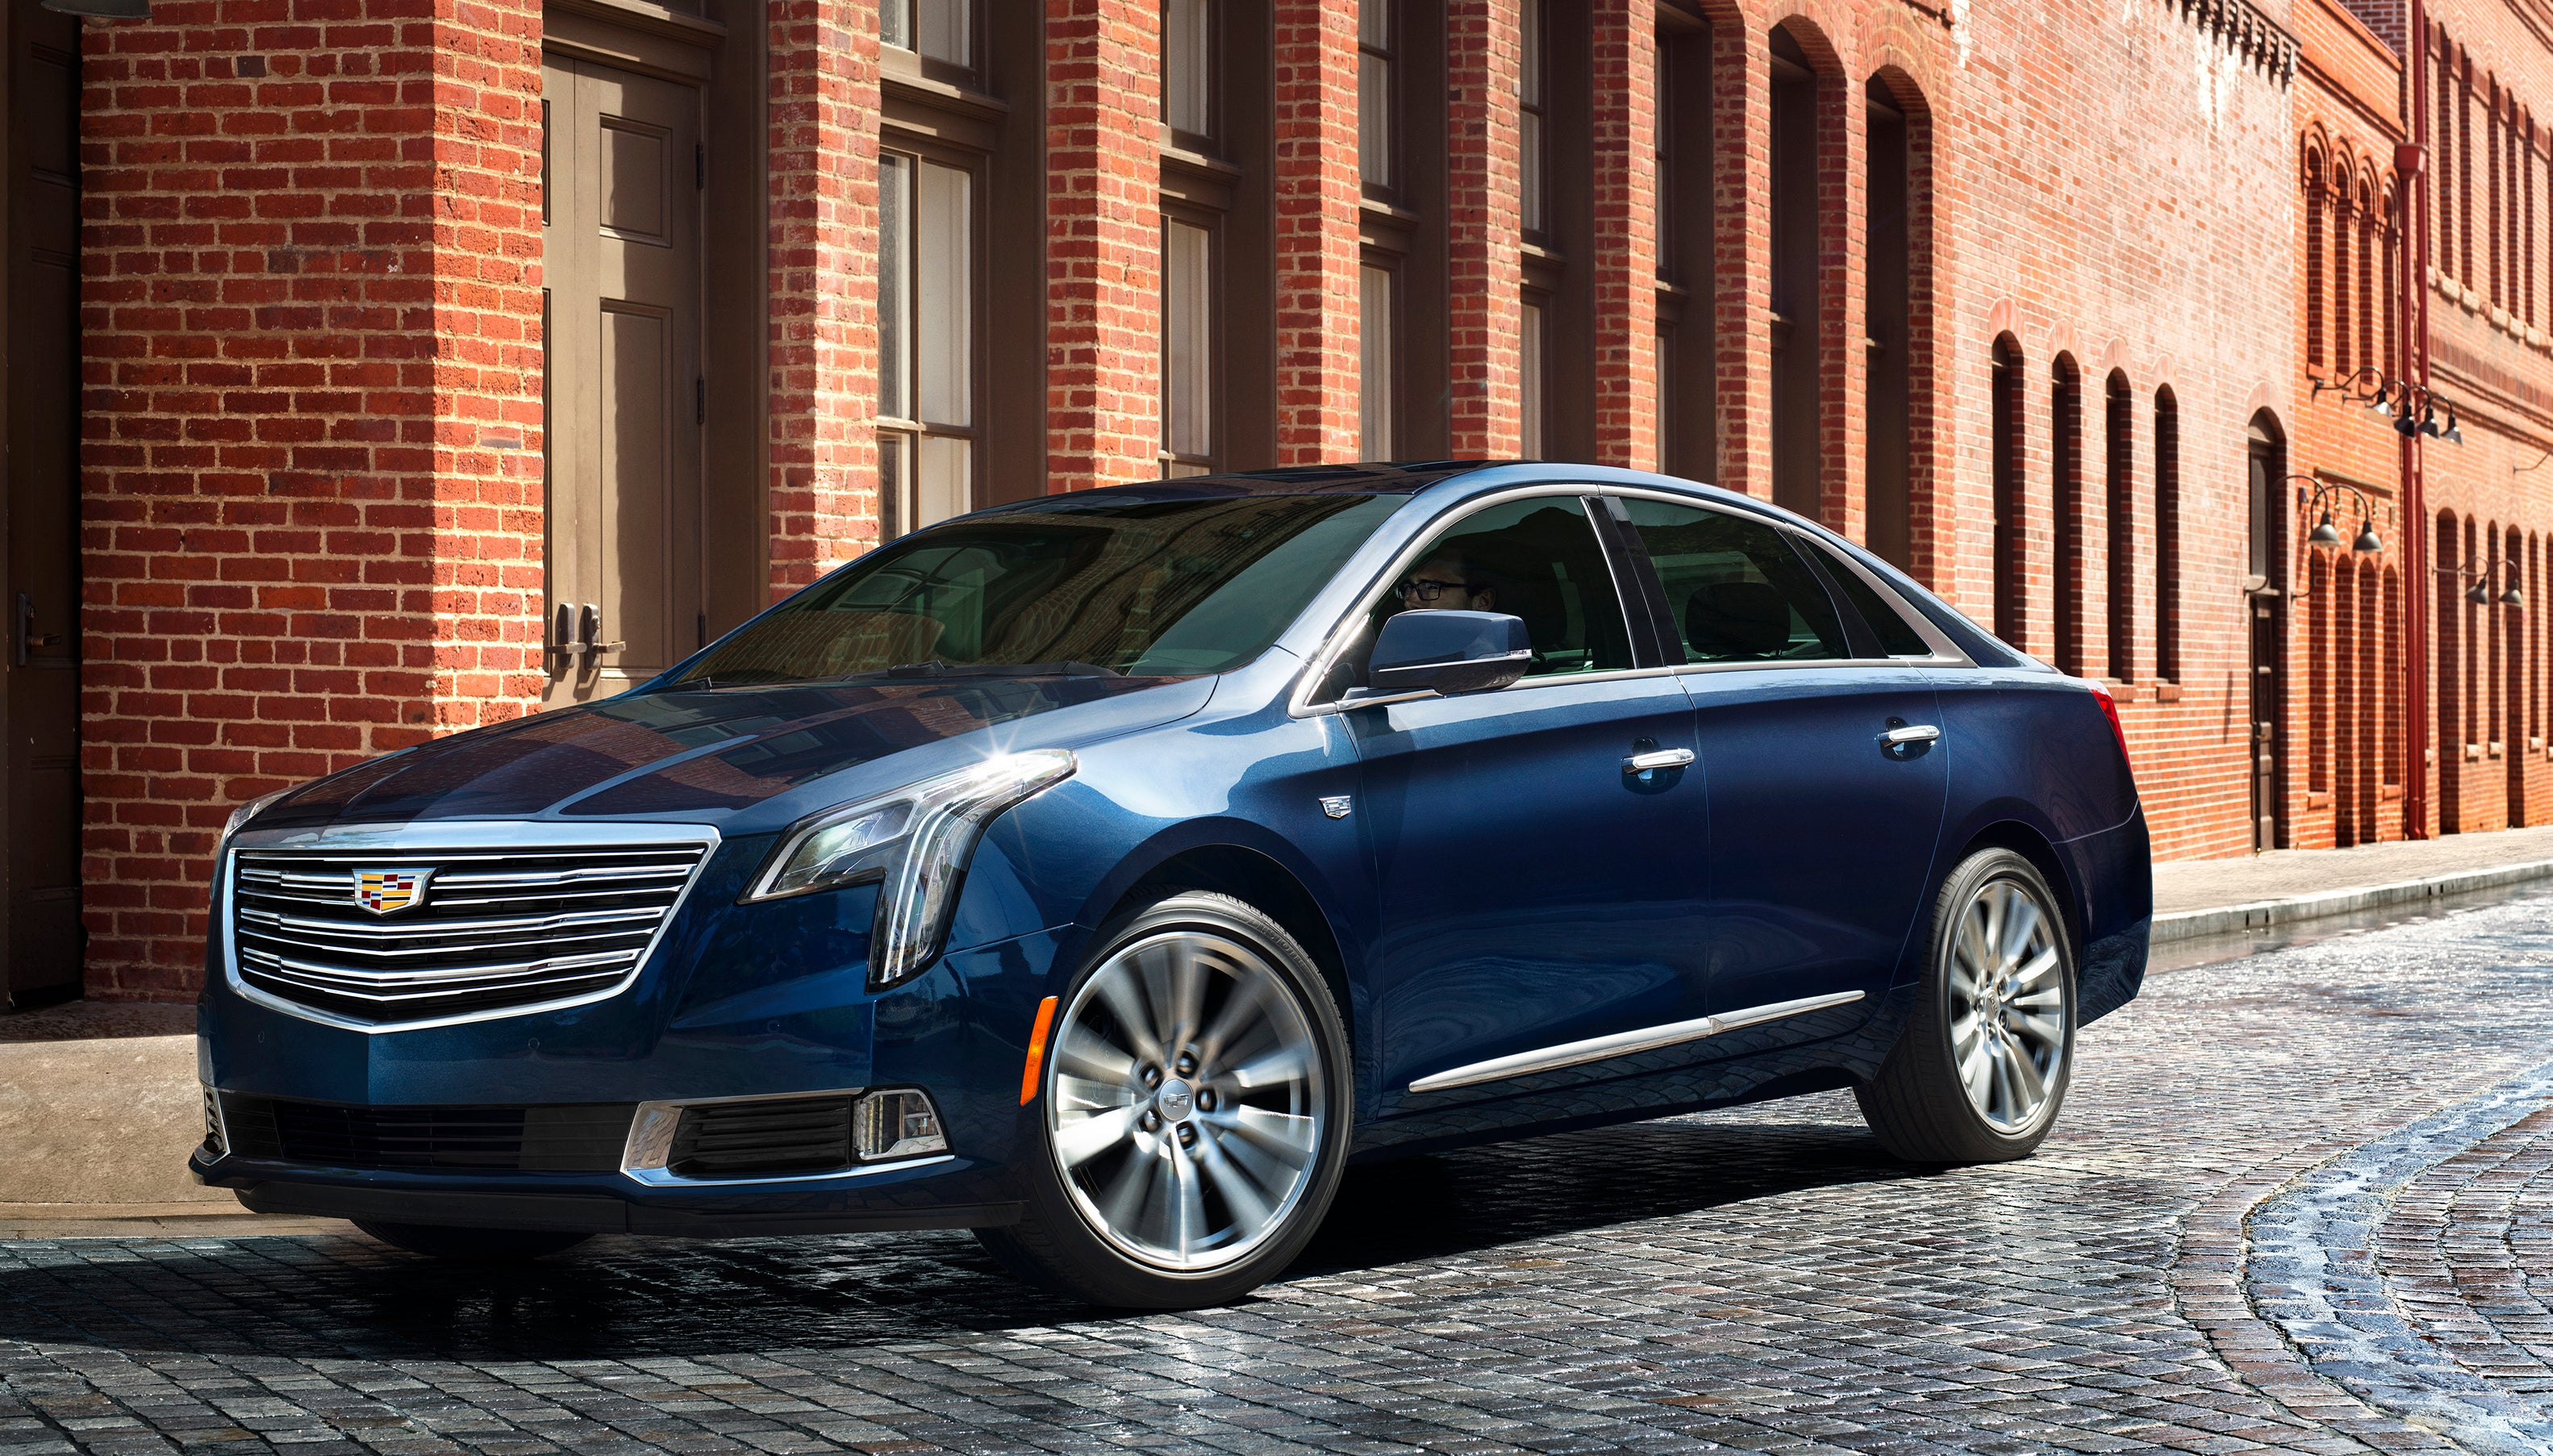 Why General Motors Revamped The 2018 Cadillac XTS -- The